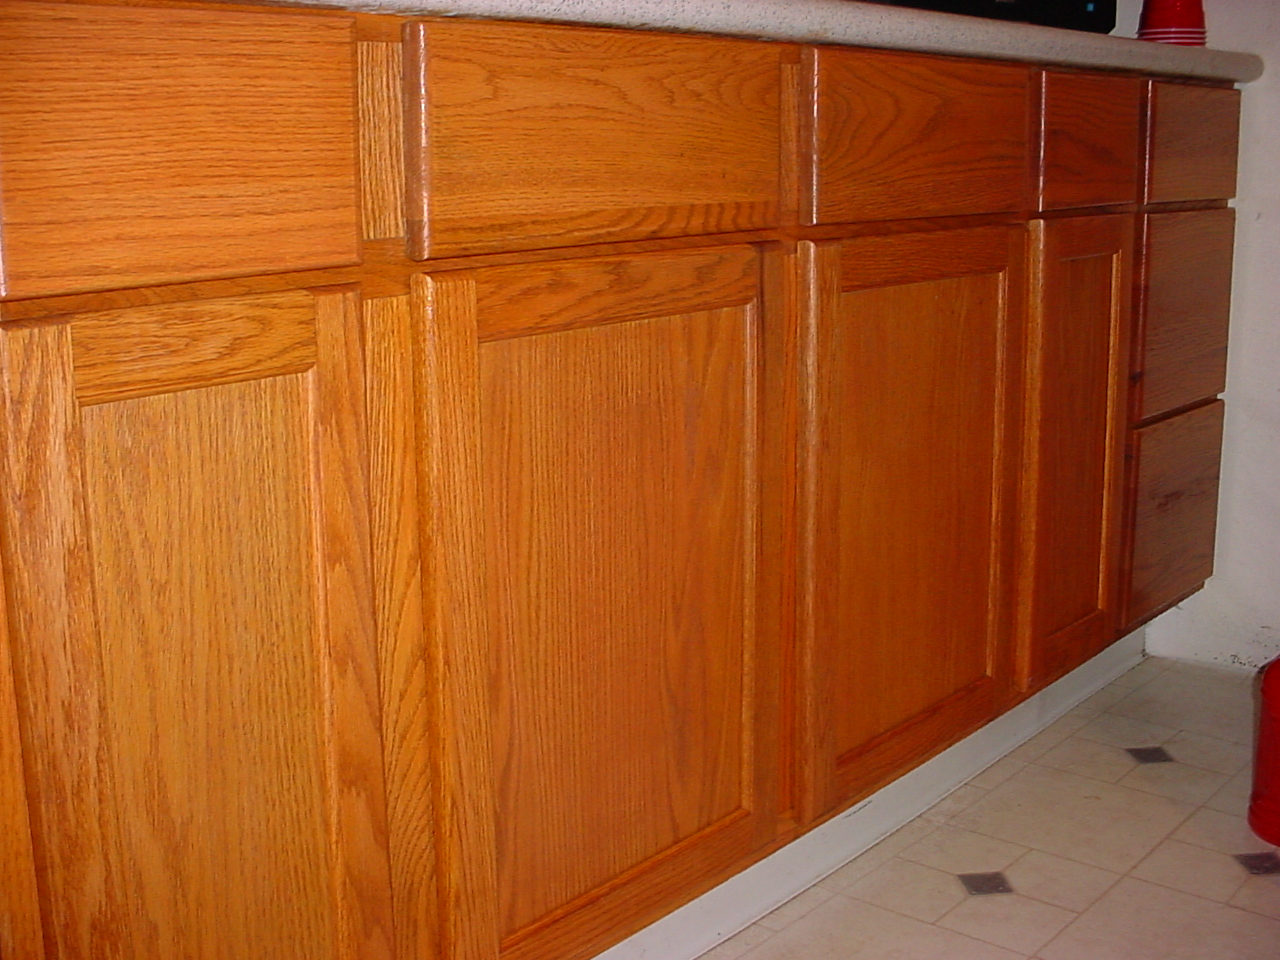 Kitchen Cabinets Re Staining Service No Need To Waste Money On New